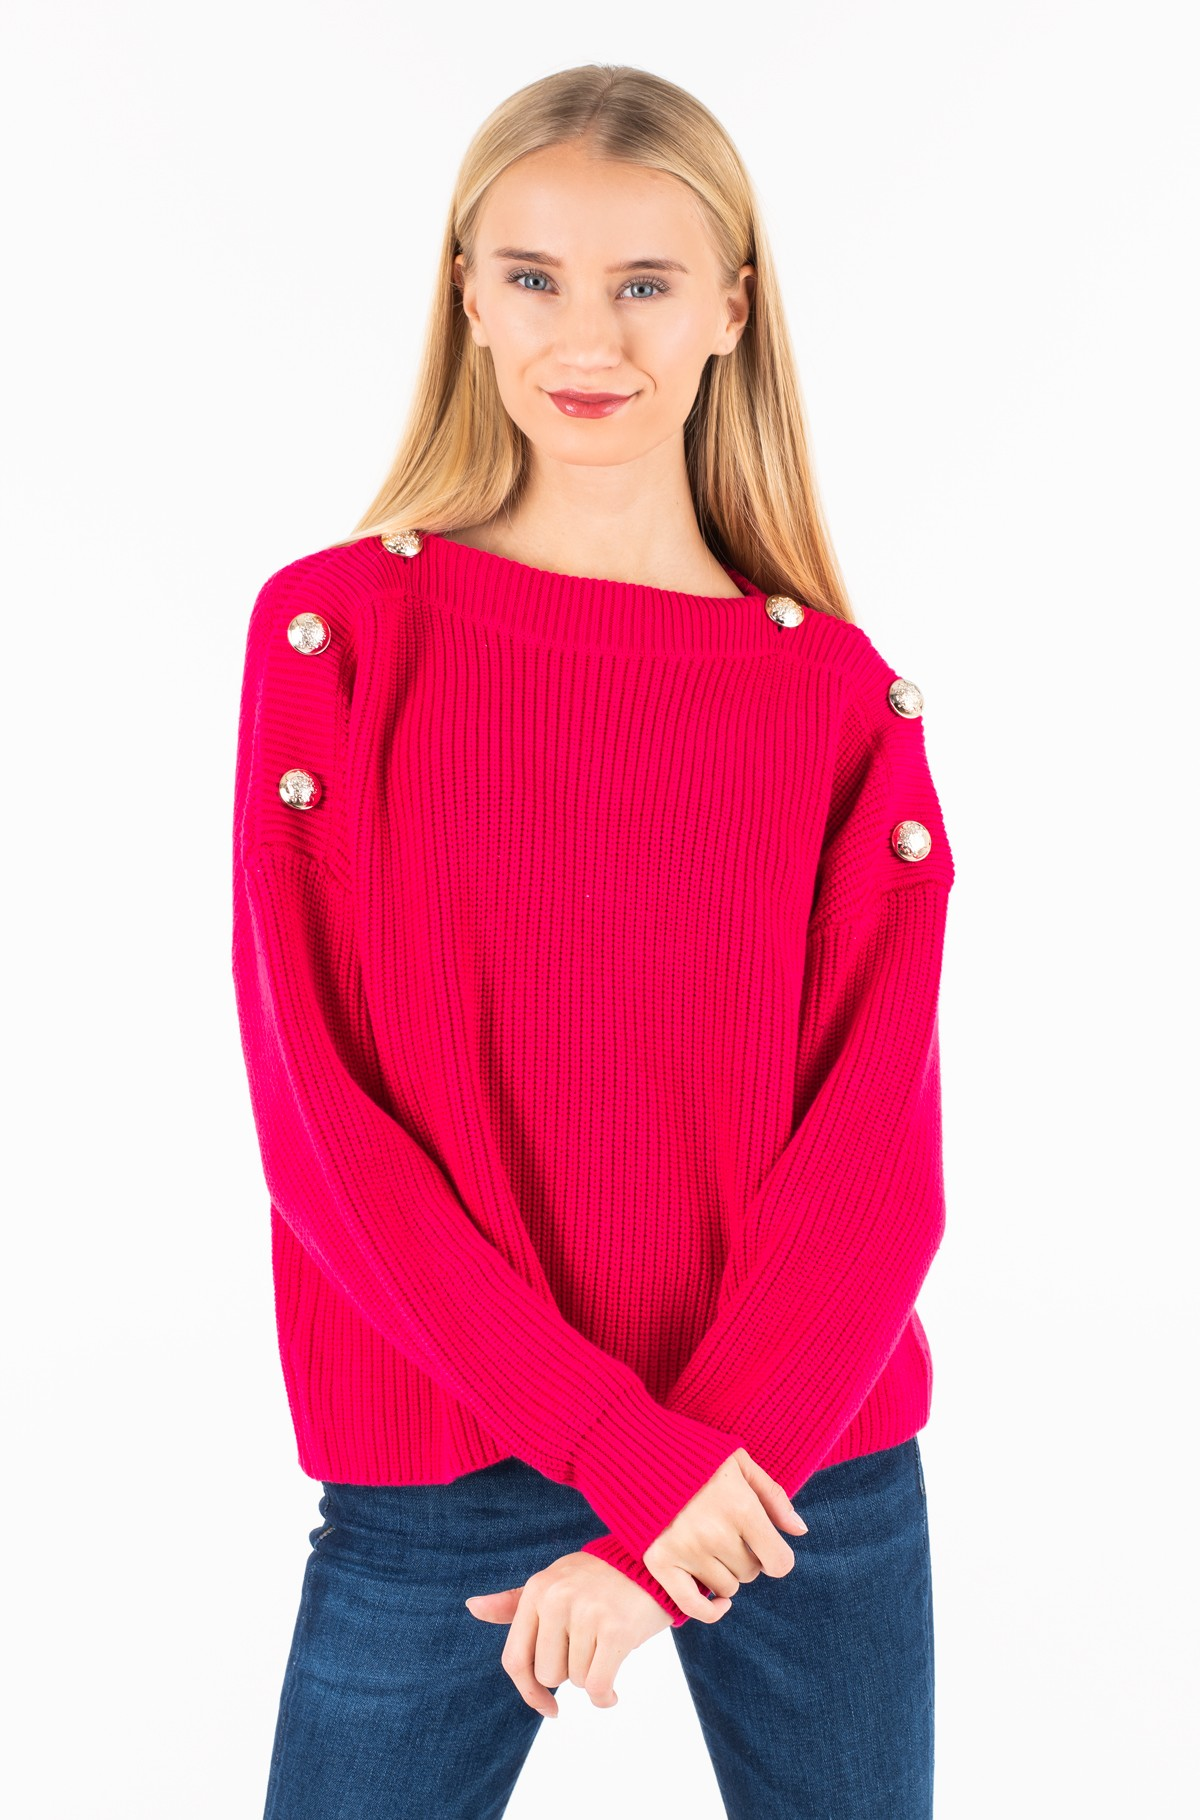 Sweater W91R78 Z2BB0-full-1